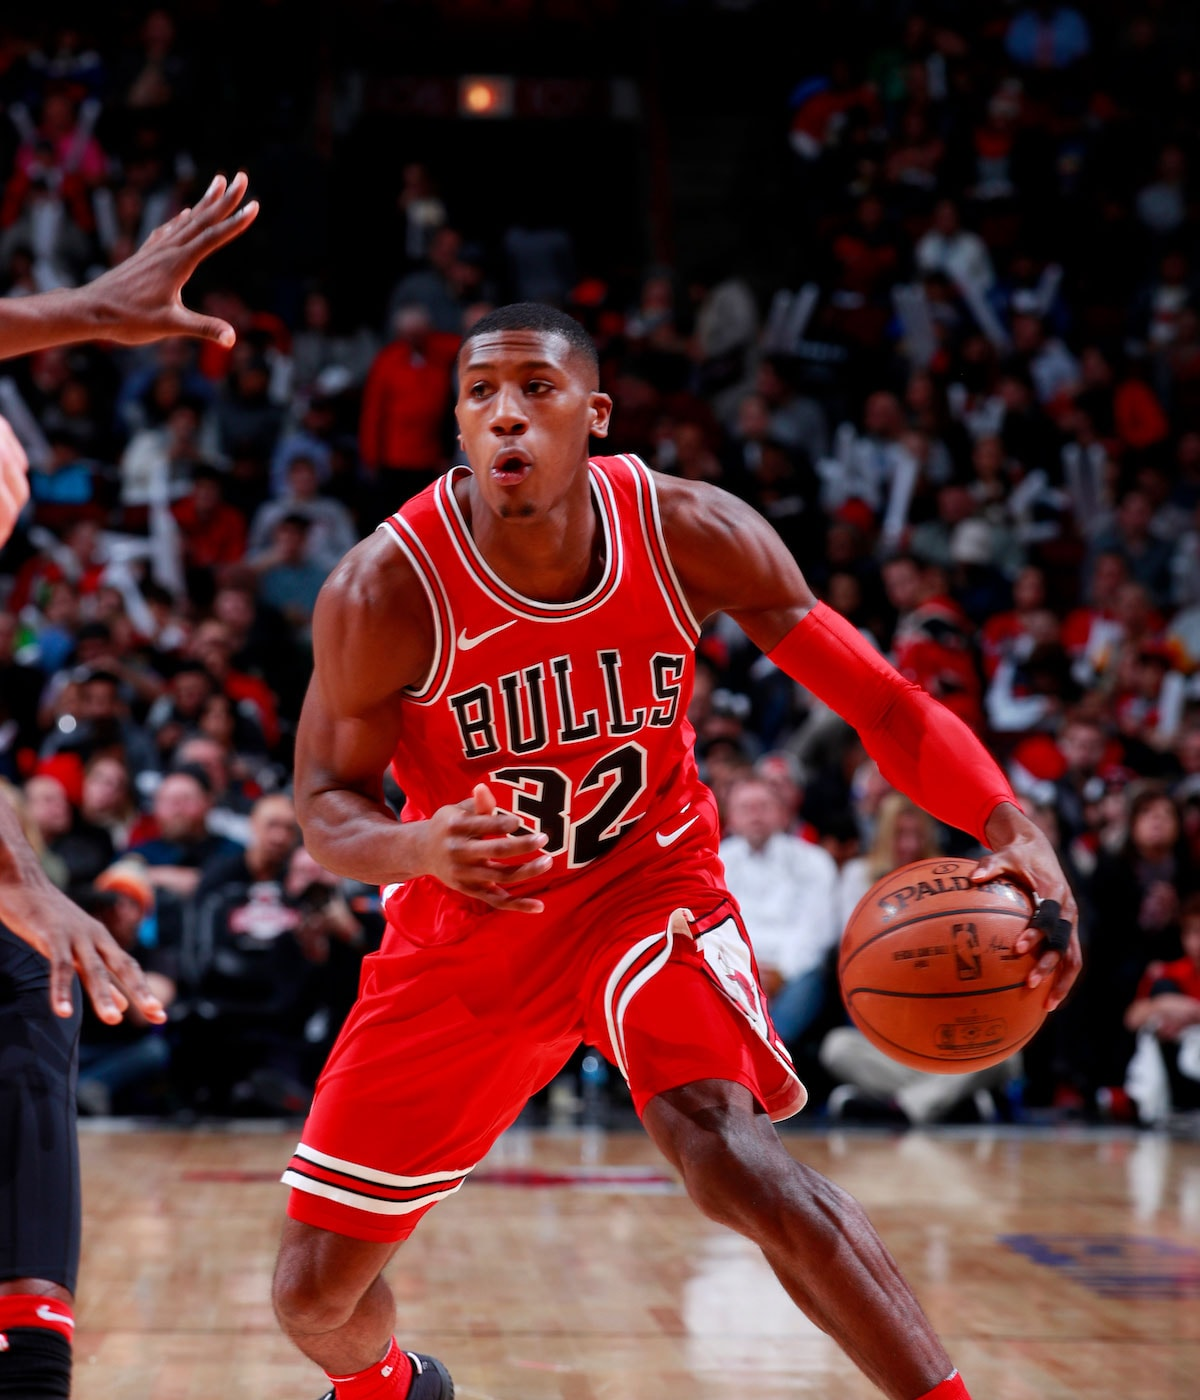 Kris Dunn handles the ball.